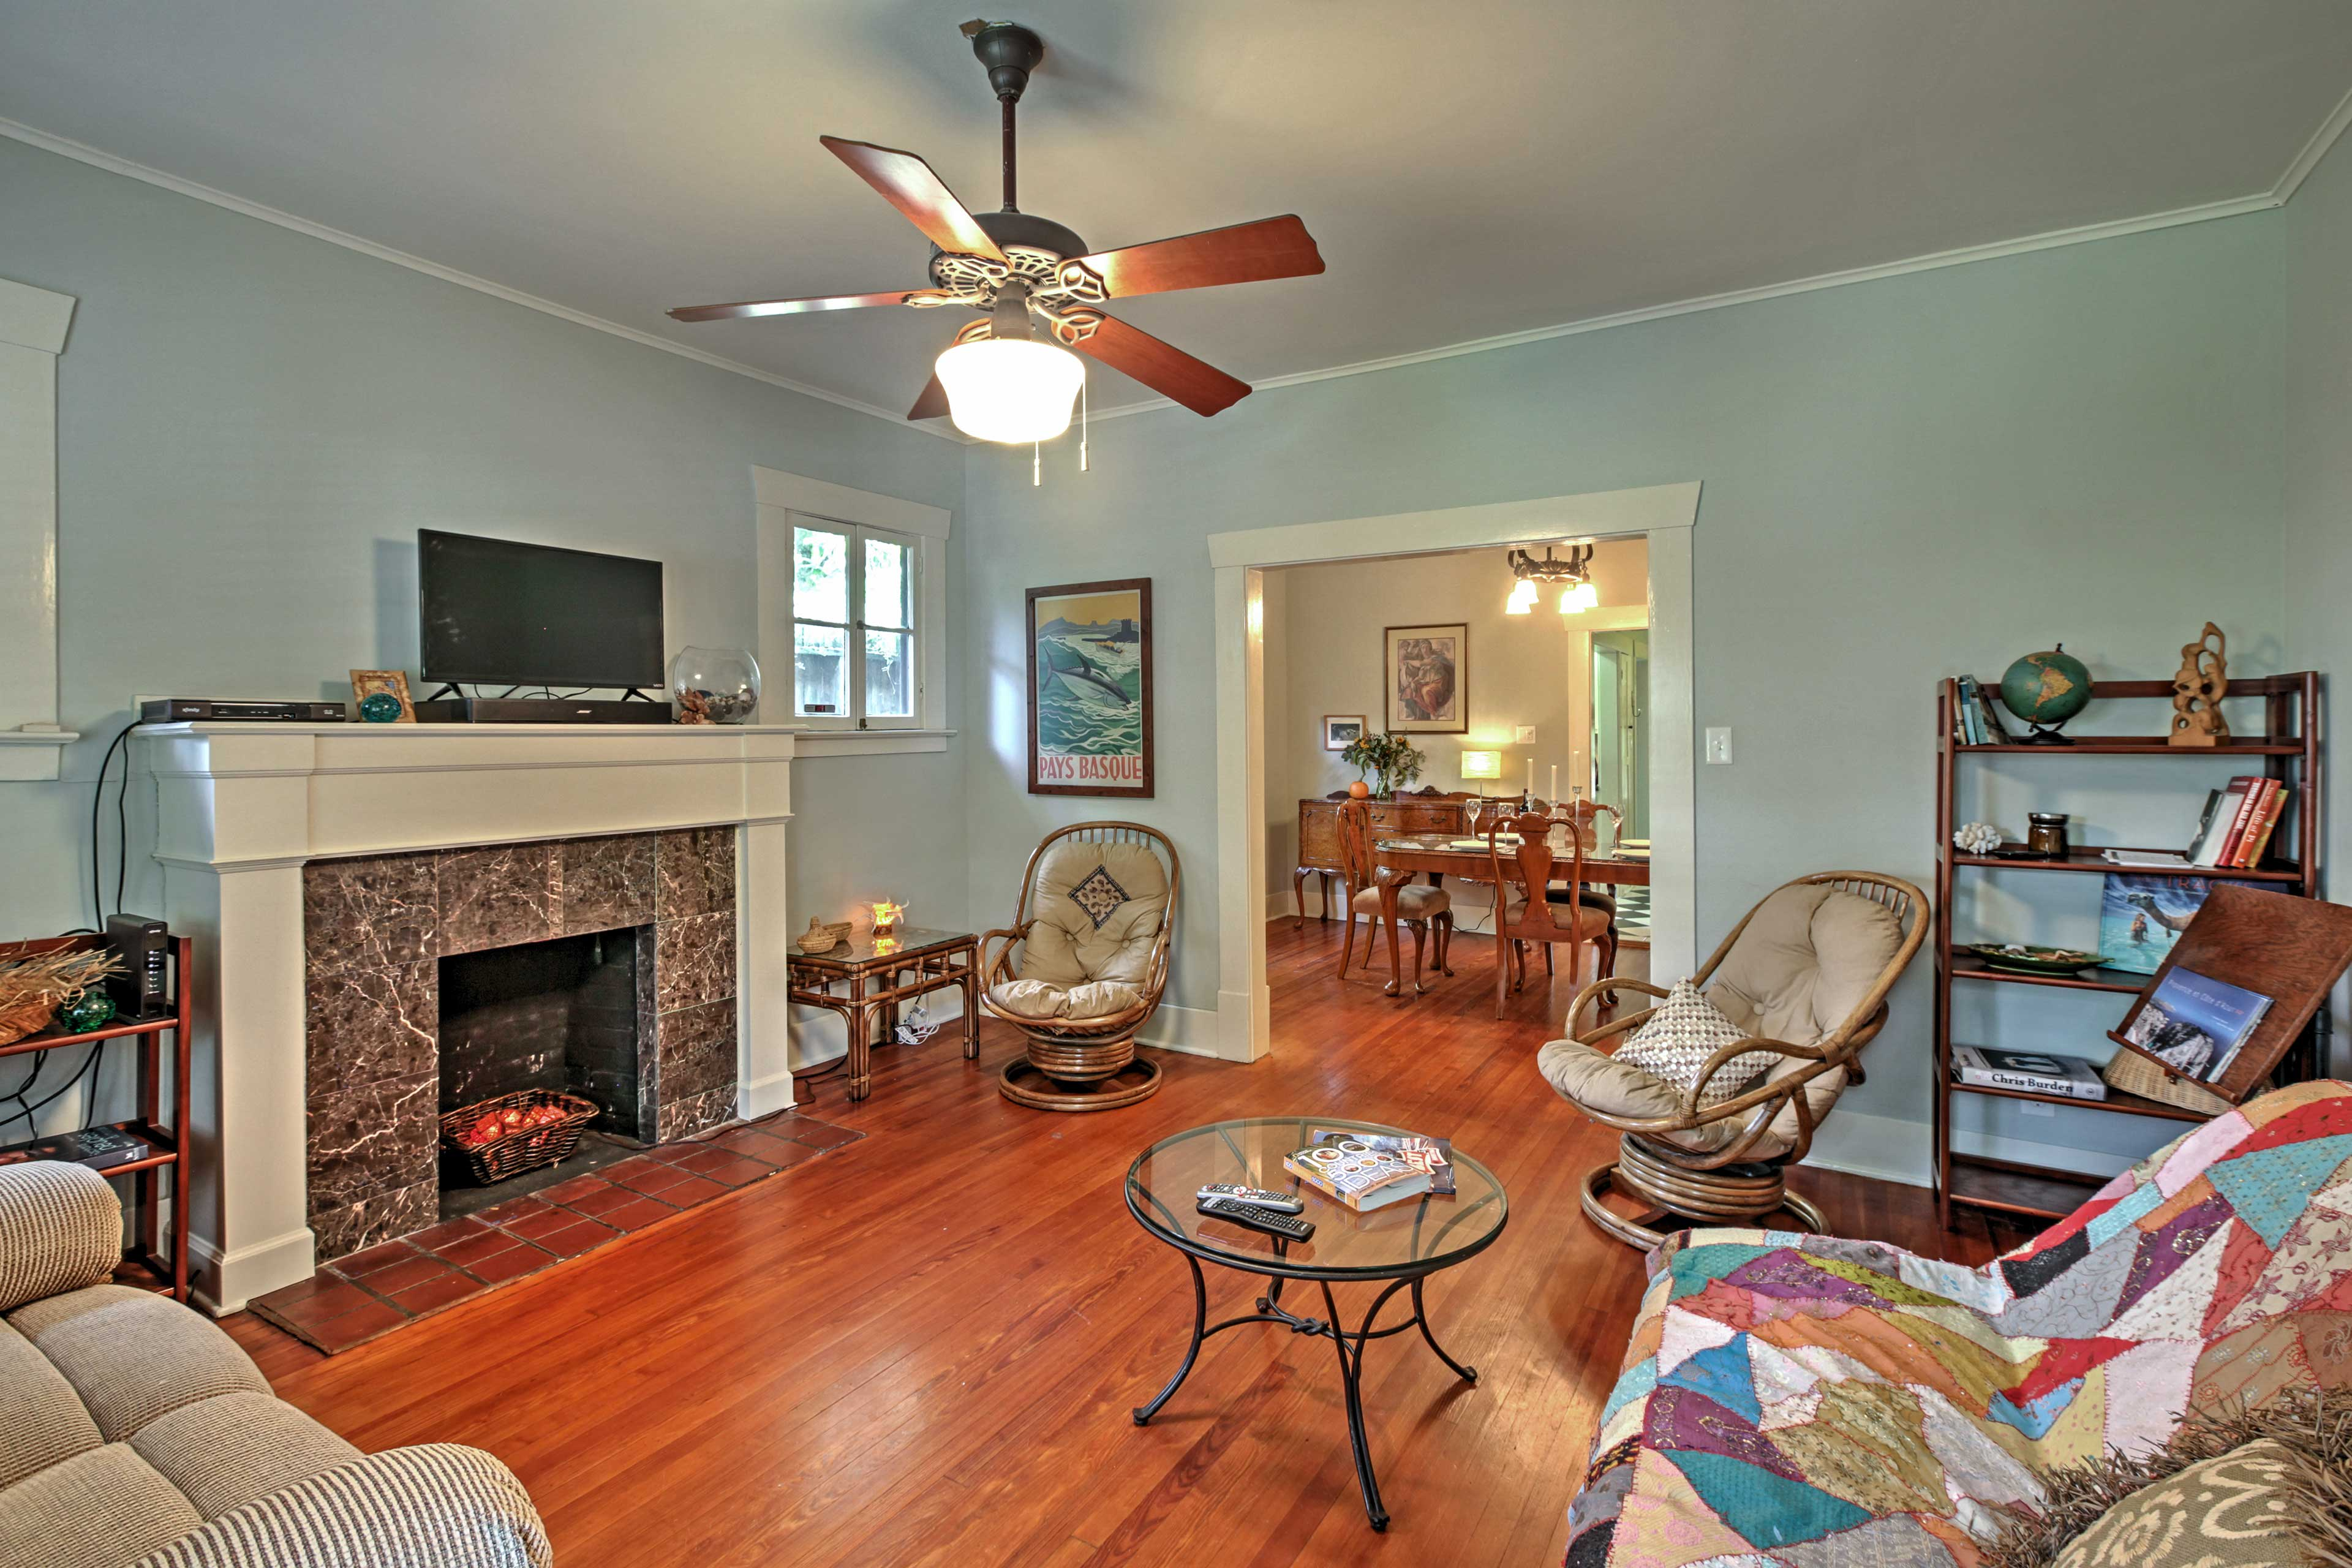 Enjoy the artistically decorated living area, with plenty of space to spread out